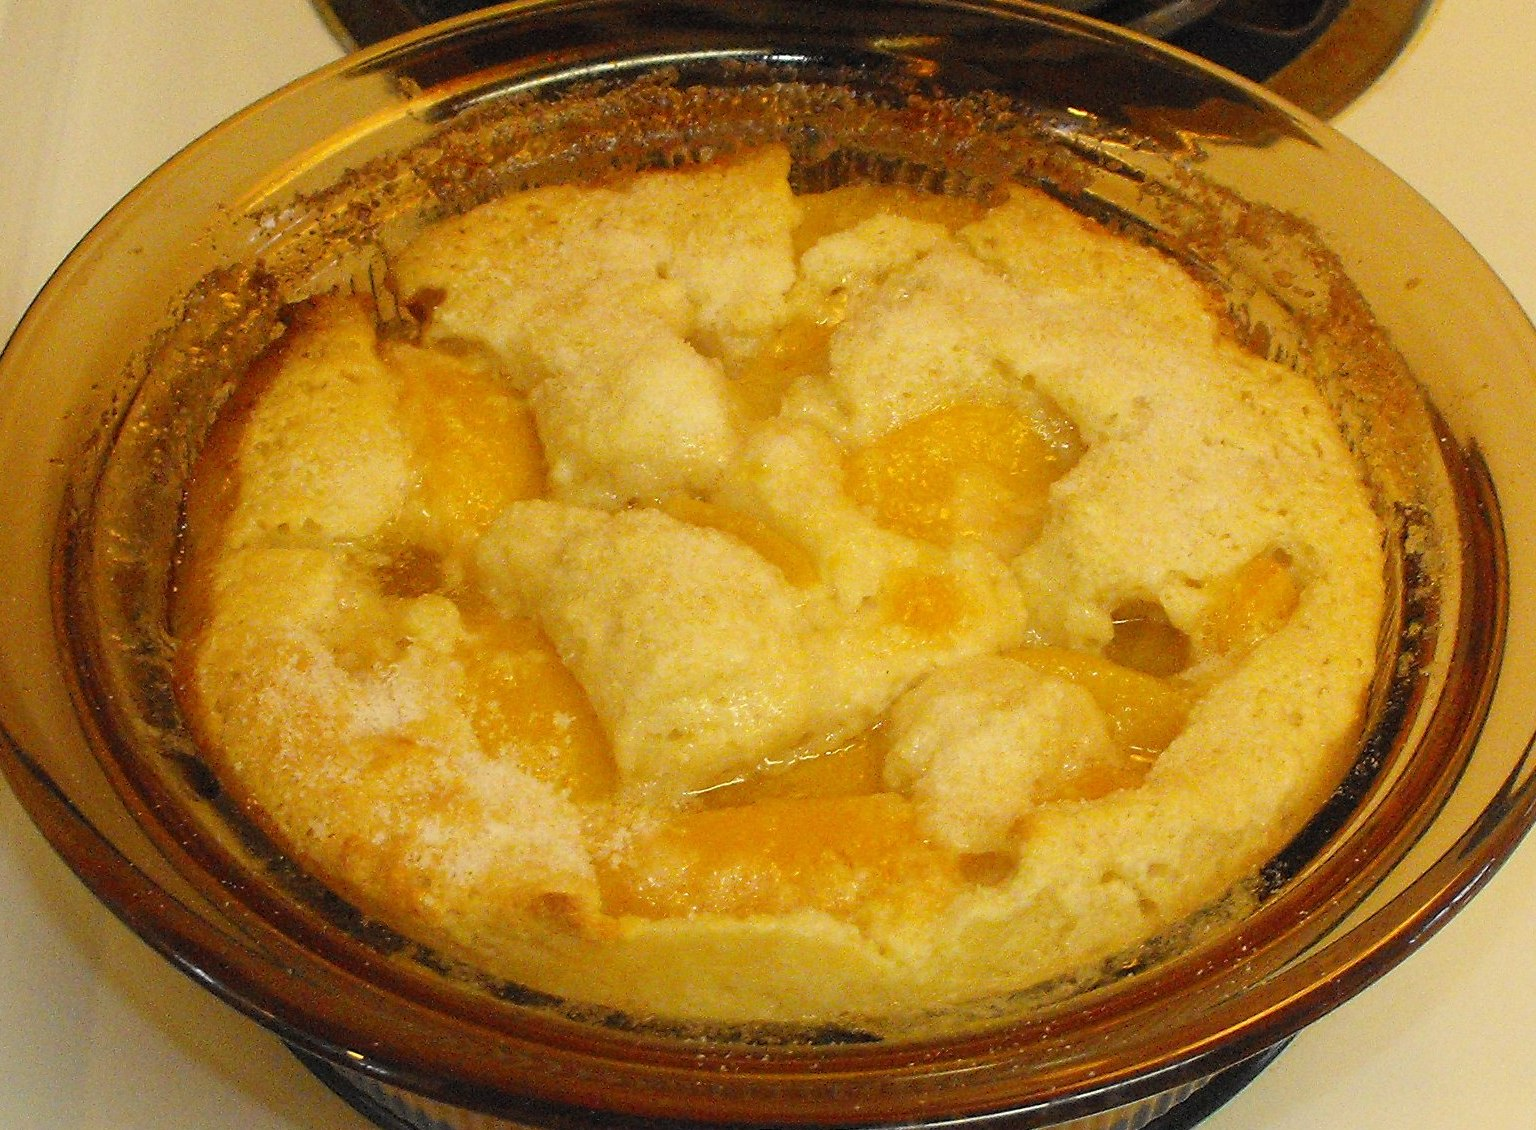 Secrets of a Southern Kitchen: Sugar Free Sunday--Peach Cobbler